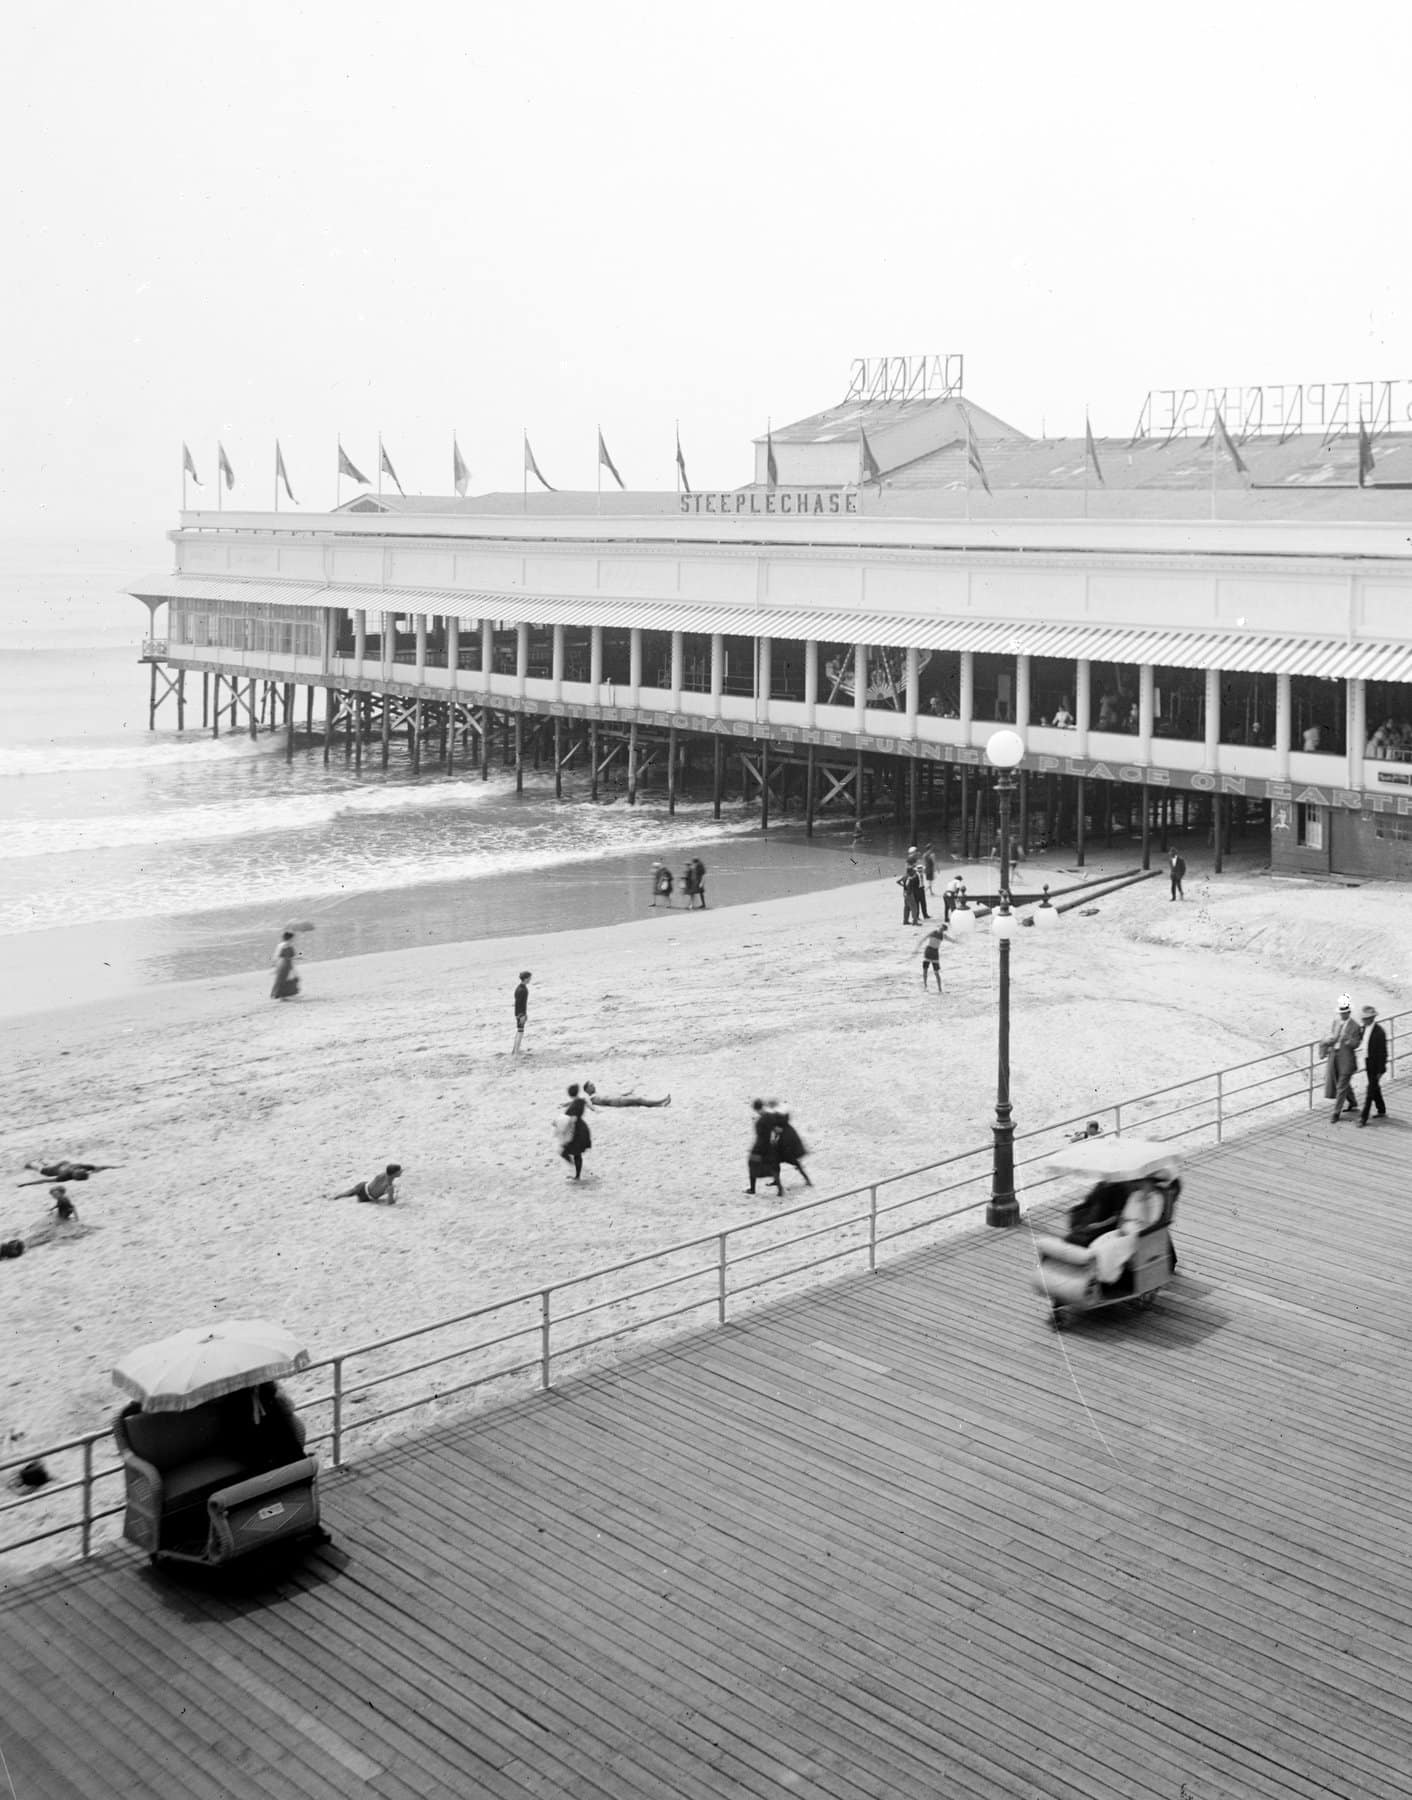 Old Atlantic City at the turn of the century (1)